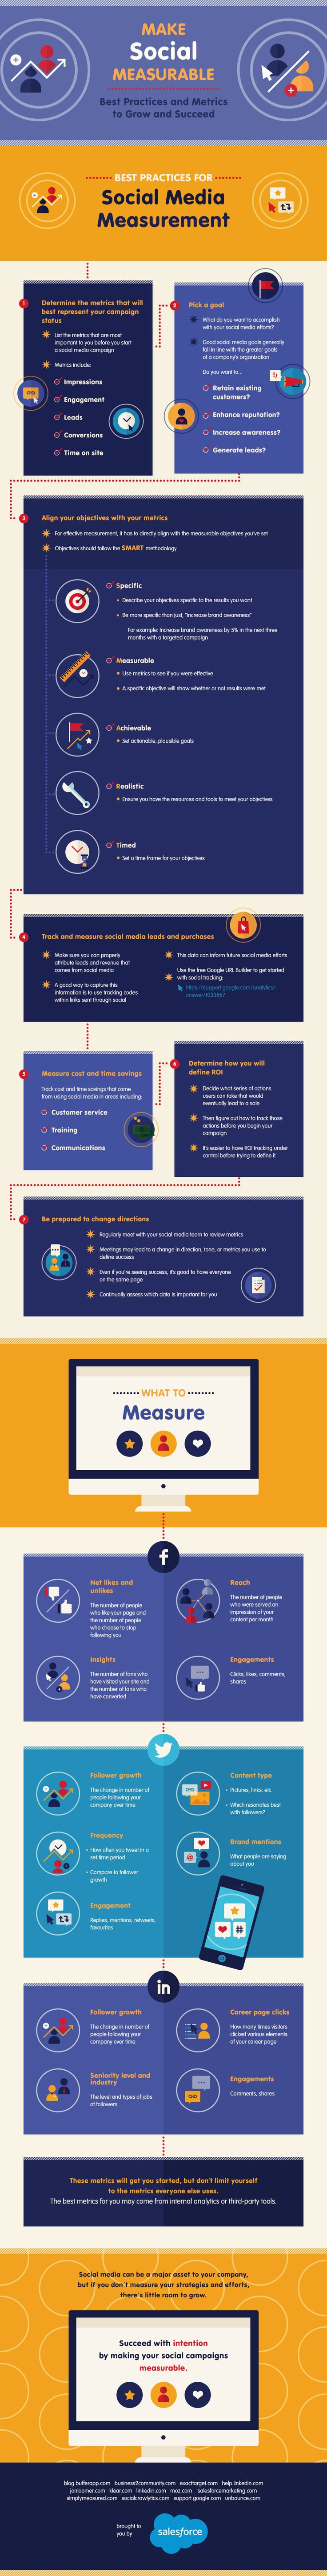 Make Social Measurable: Best Practices and Metrics to Grow and Succeed #infographic #SocialMedia